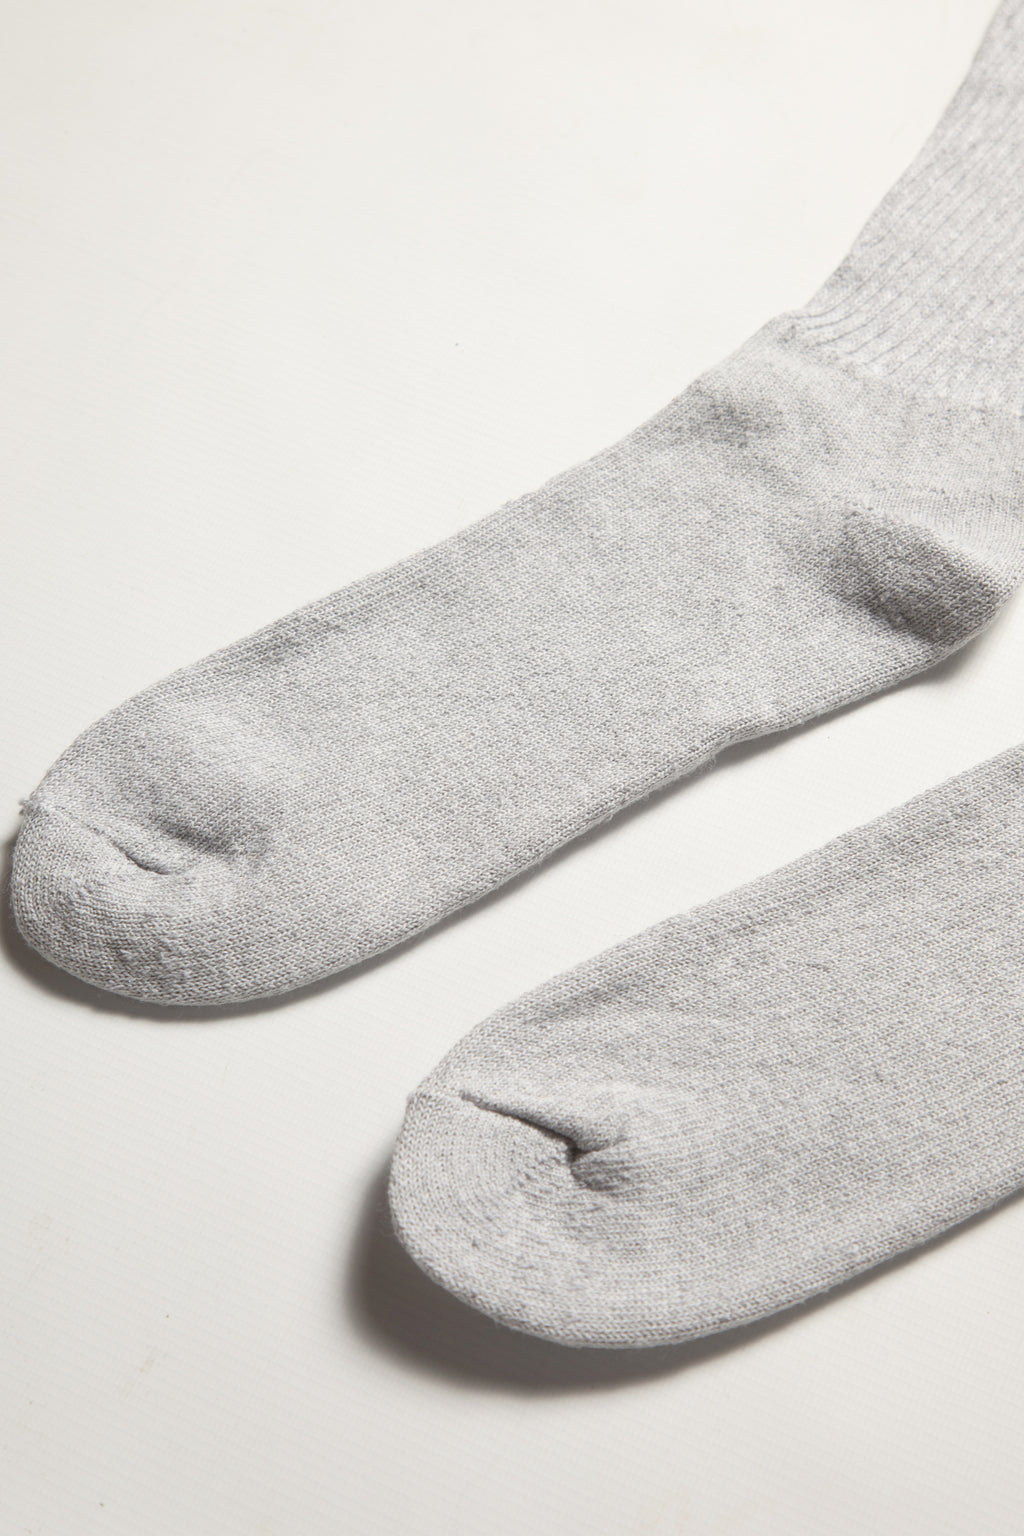 Railroad Sock - 3 Pack Crew Socks - Grey